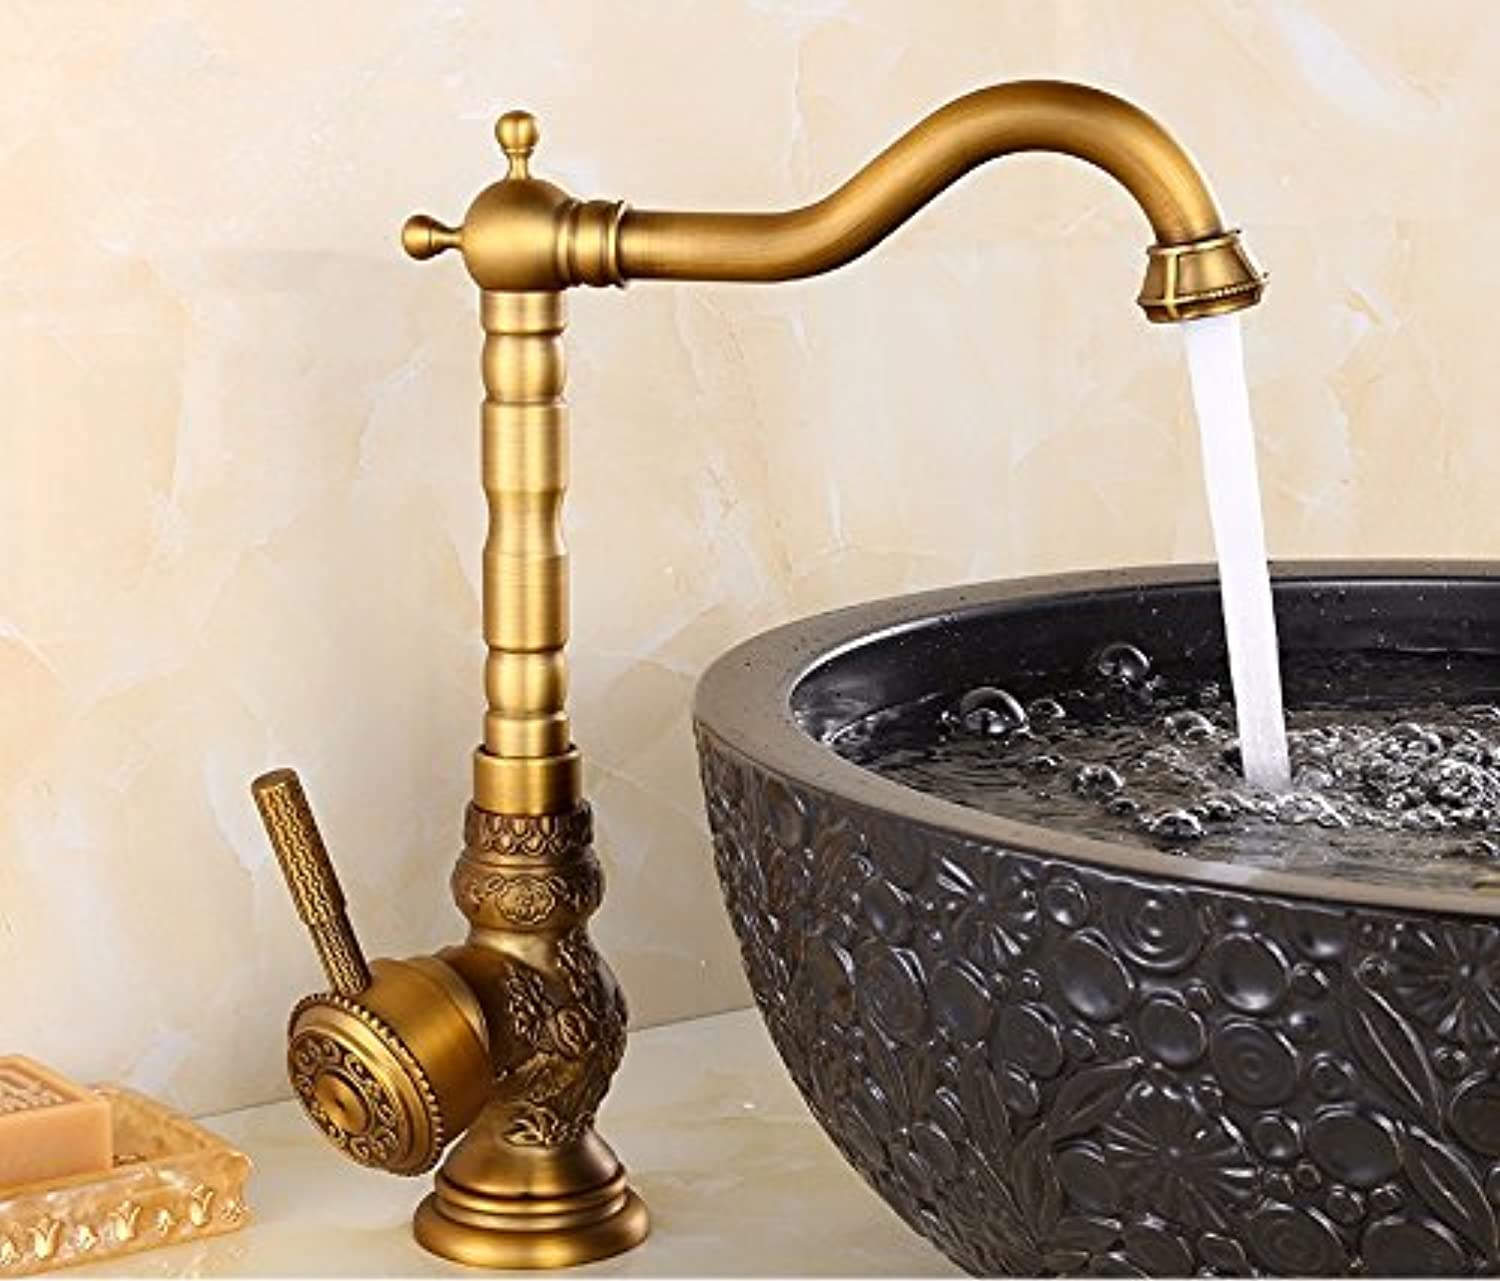 LHbox Basin Mixer Tap Bathroom Sink Faucet Antique faucet hot and cold full copper carved basin, high)